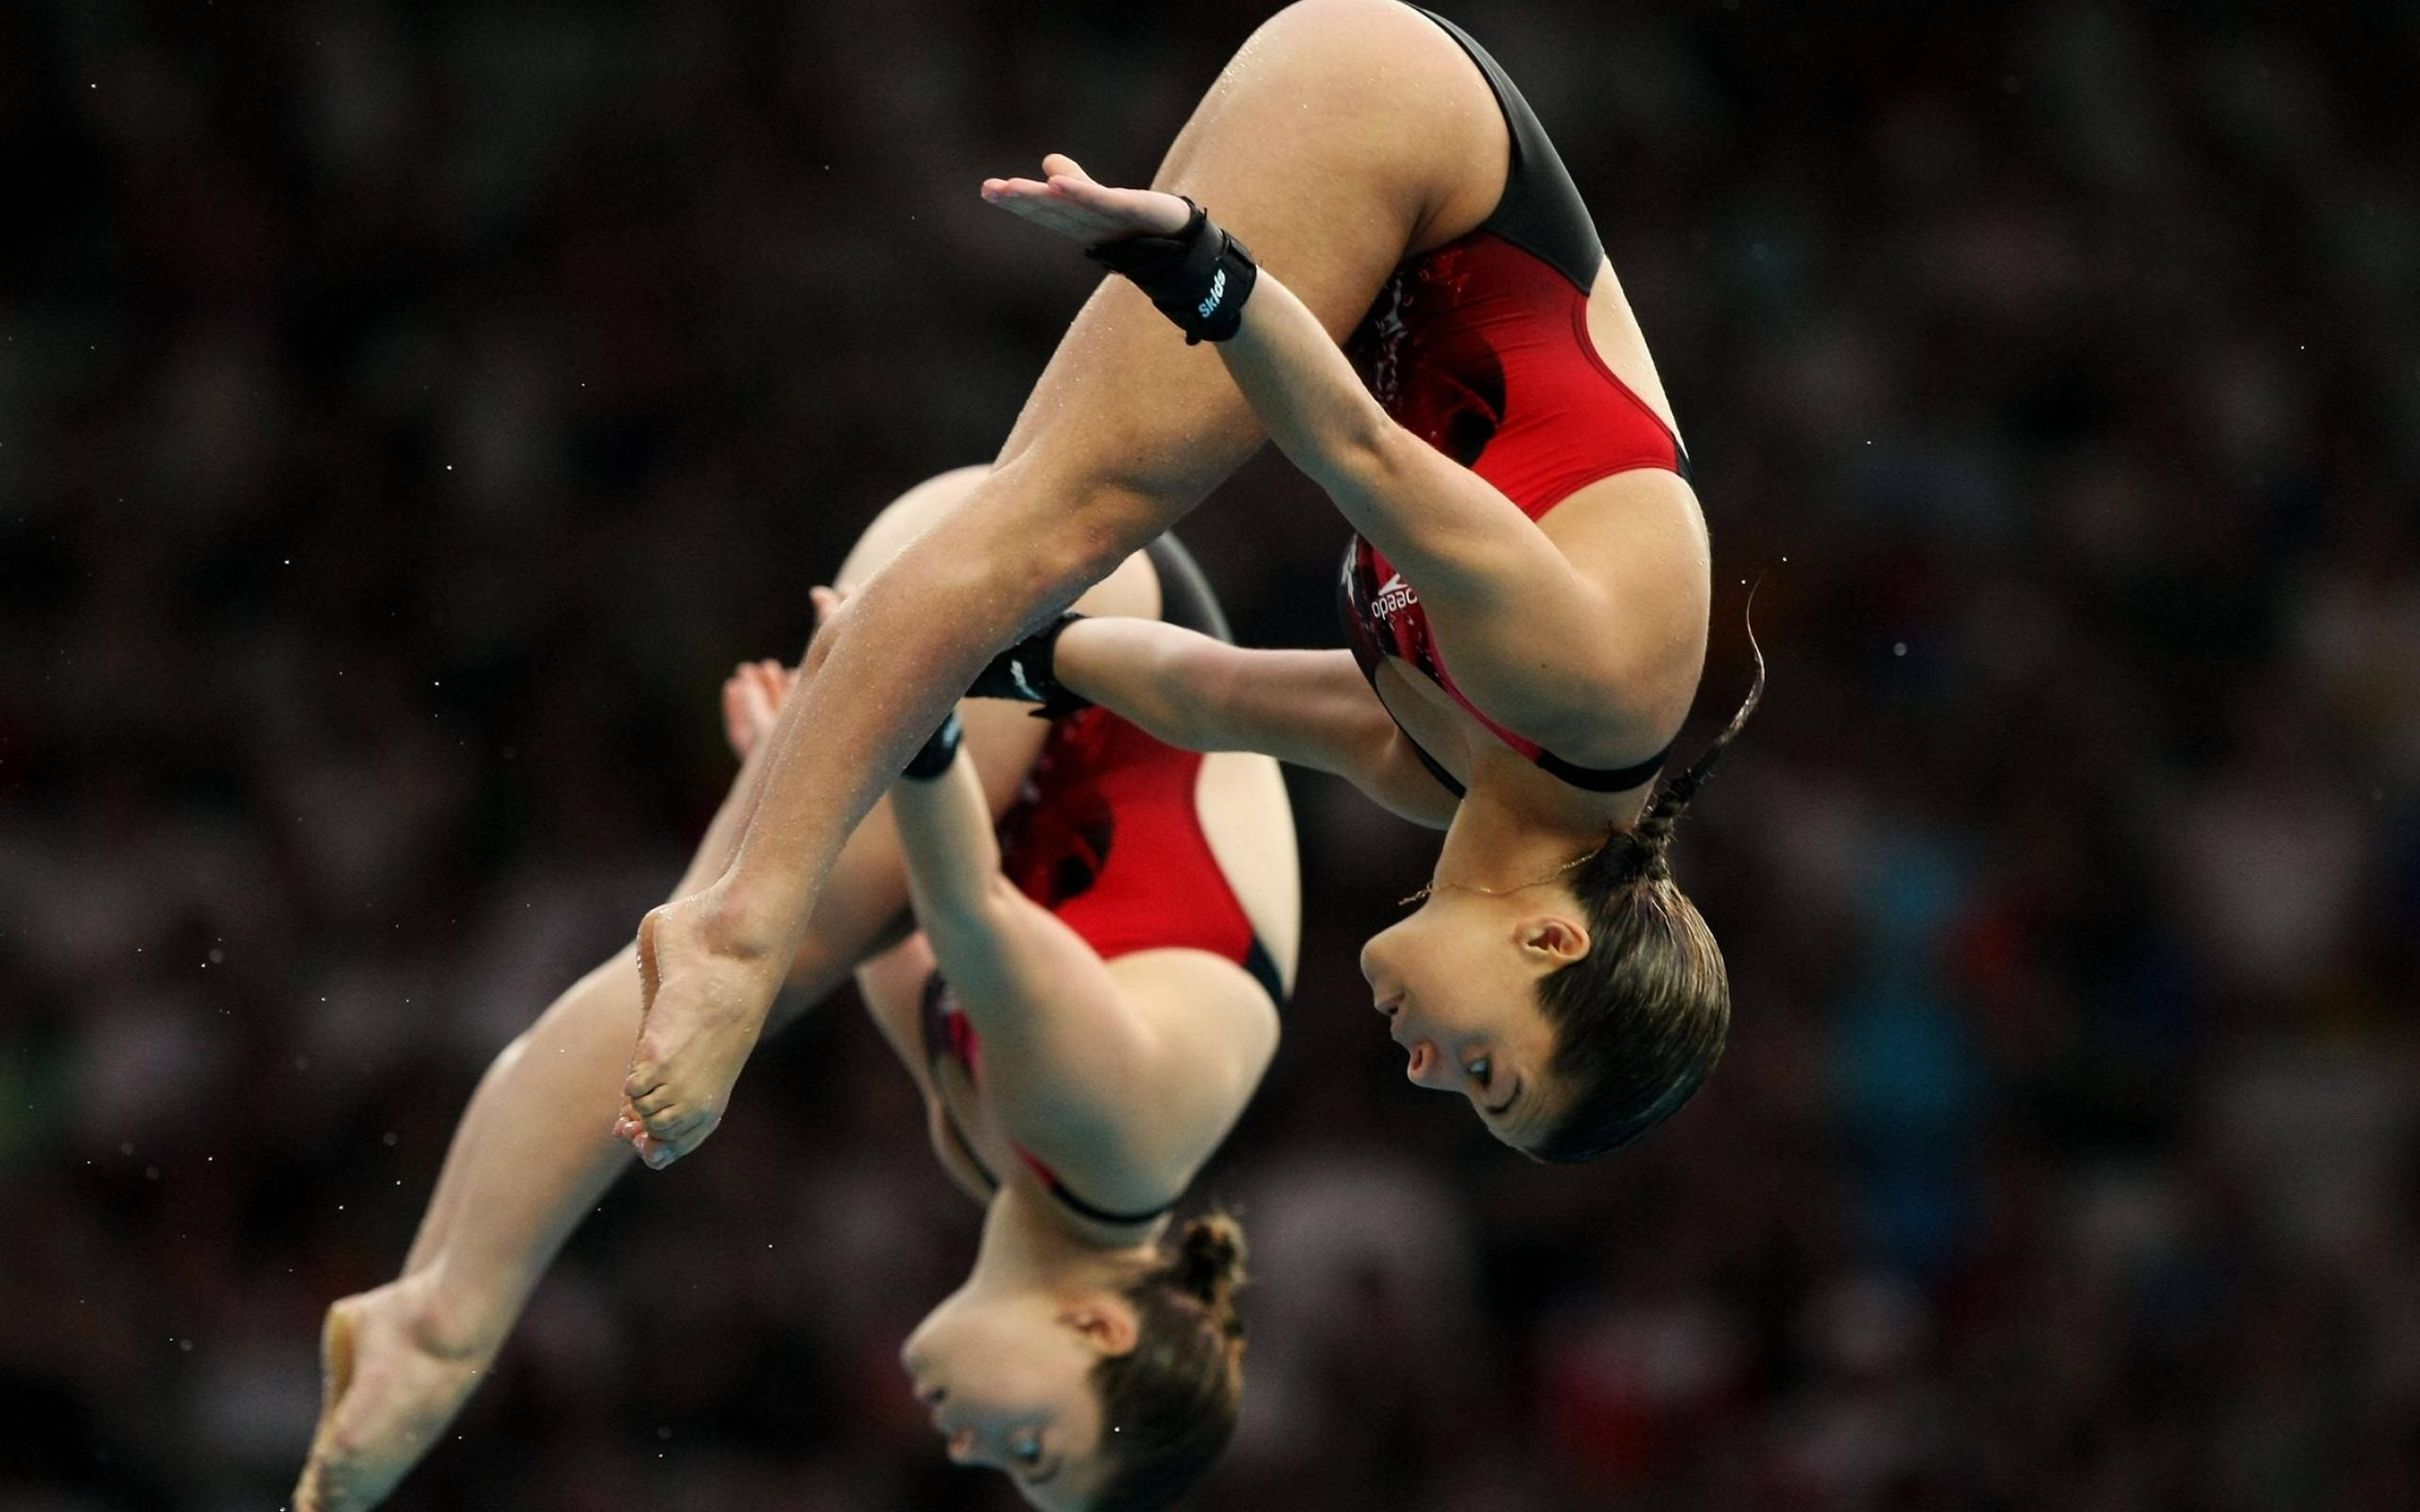 the Olympic diving… pic source .